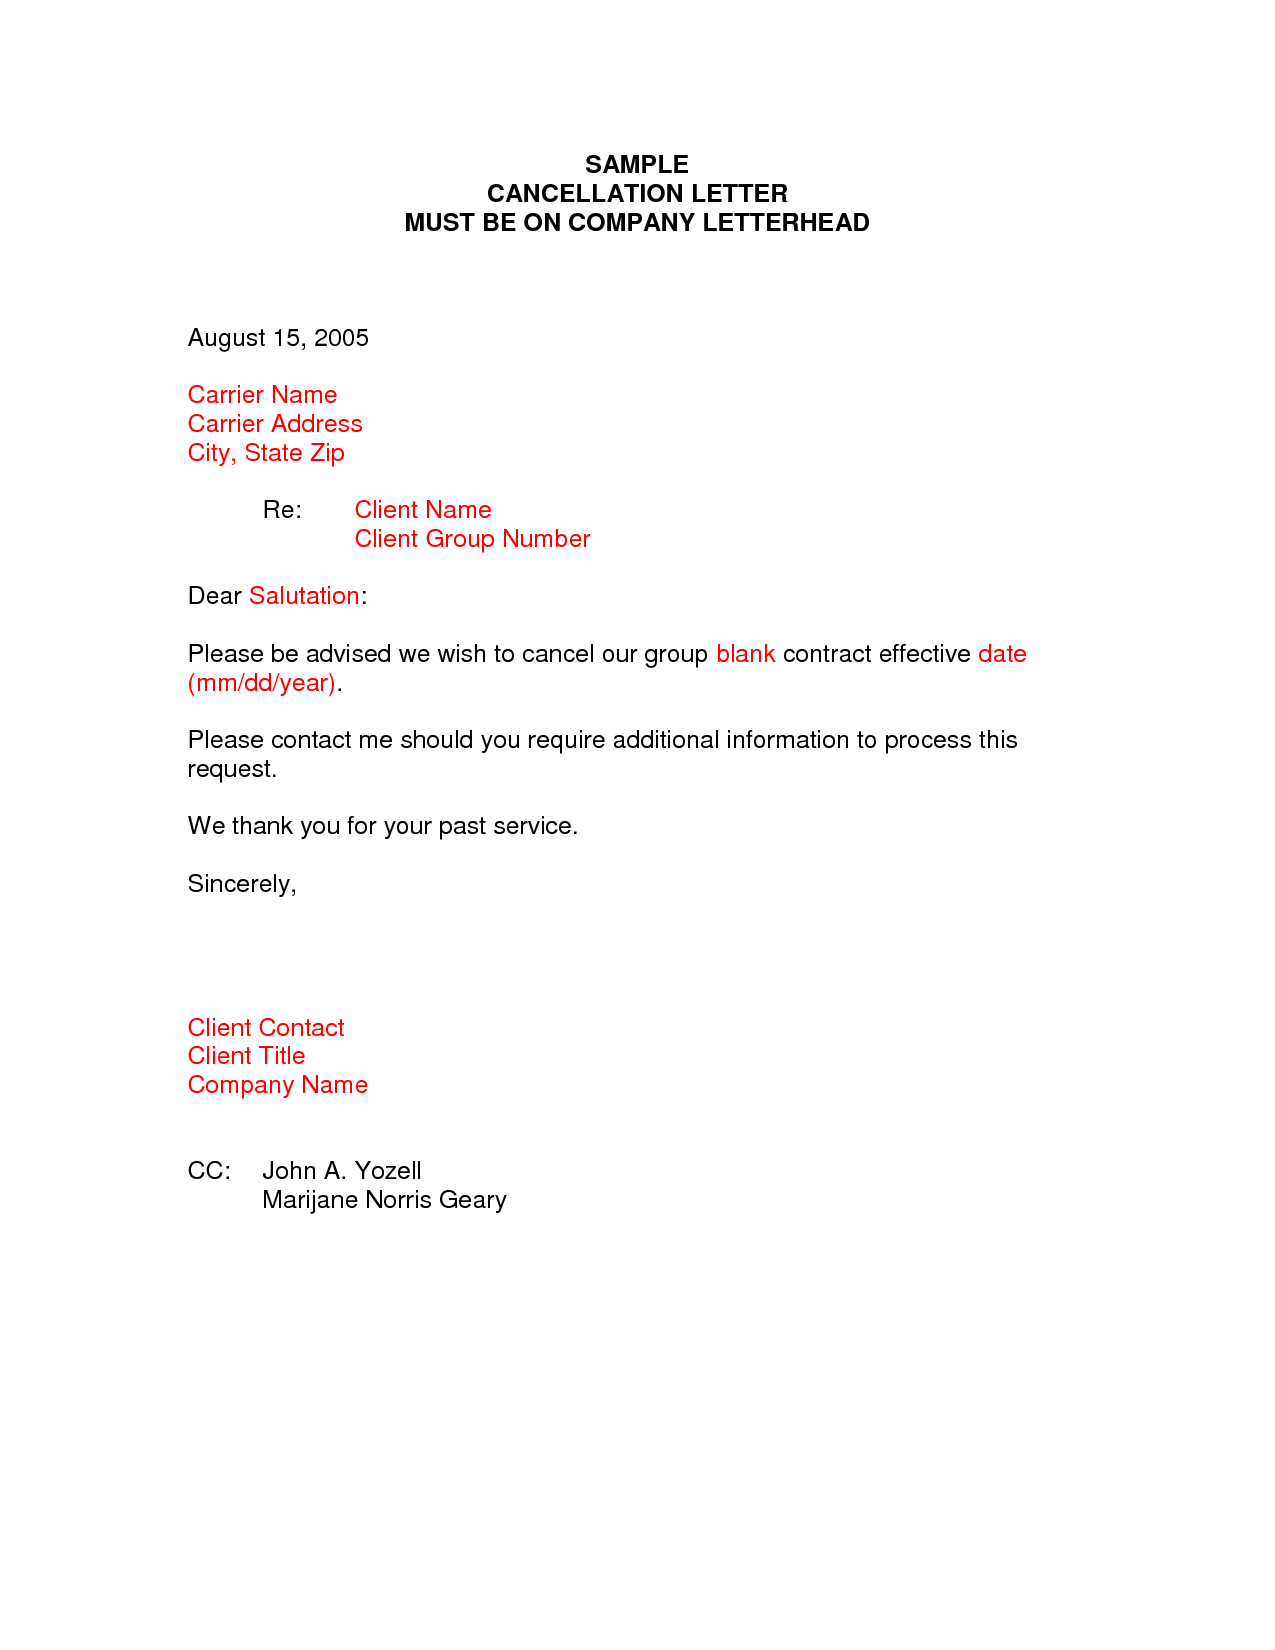 Extended Car Warranty Cancellation Letter Template - Sample Termination Letter format Business Case Examples Free Cover